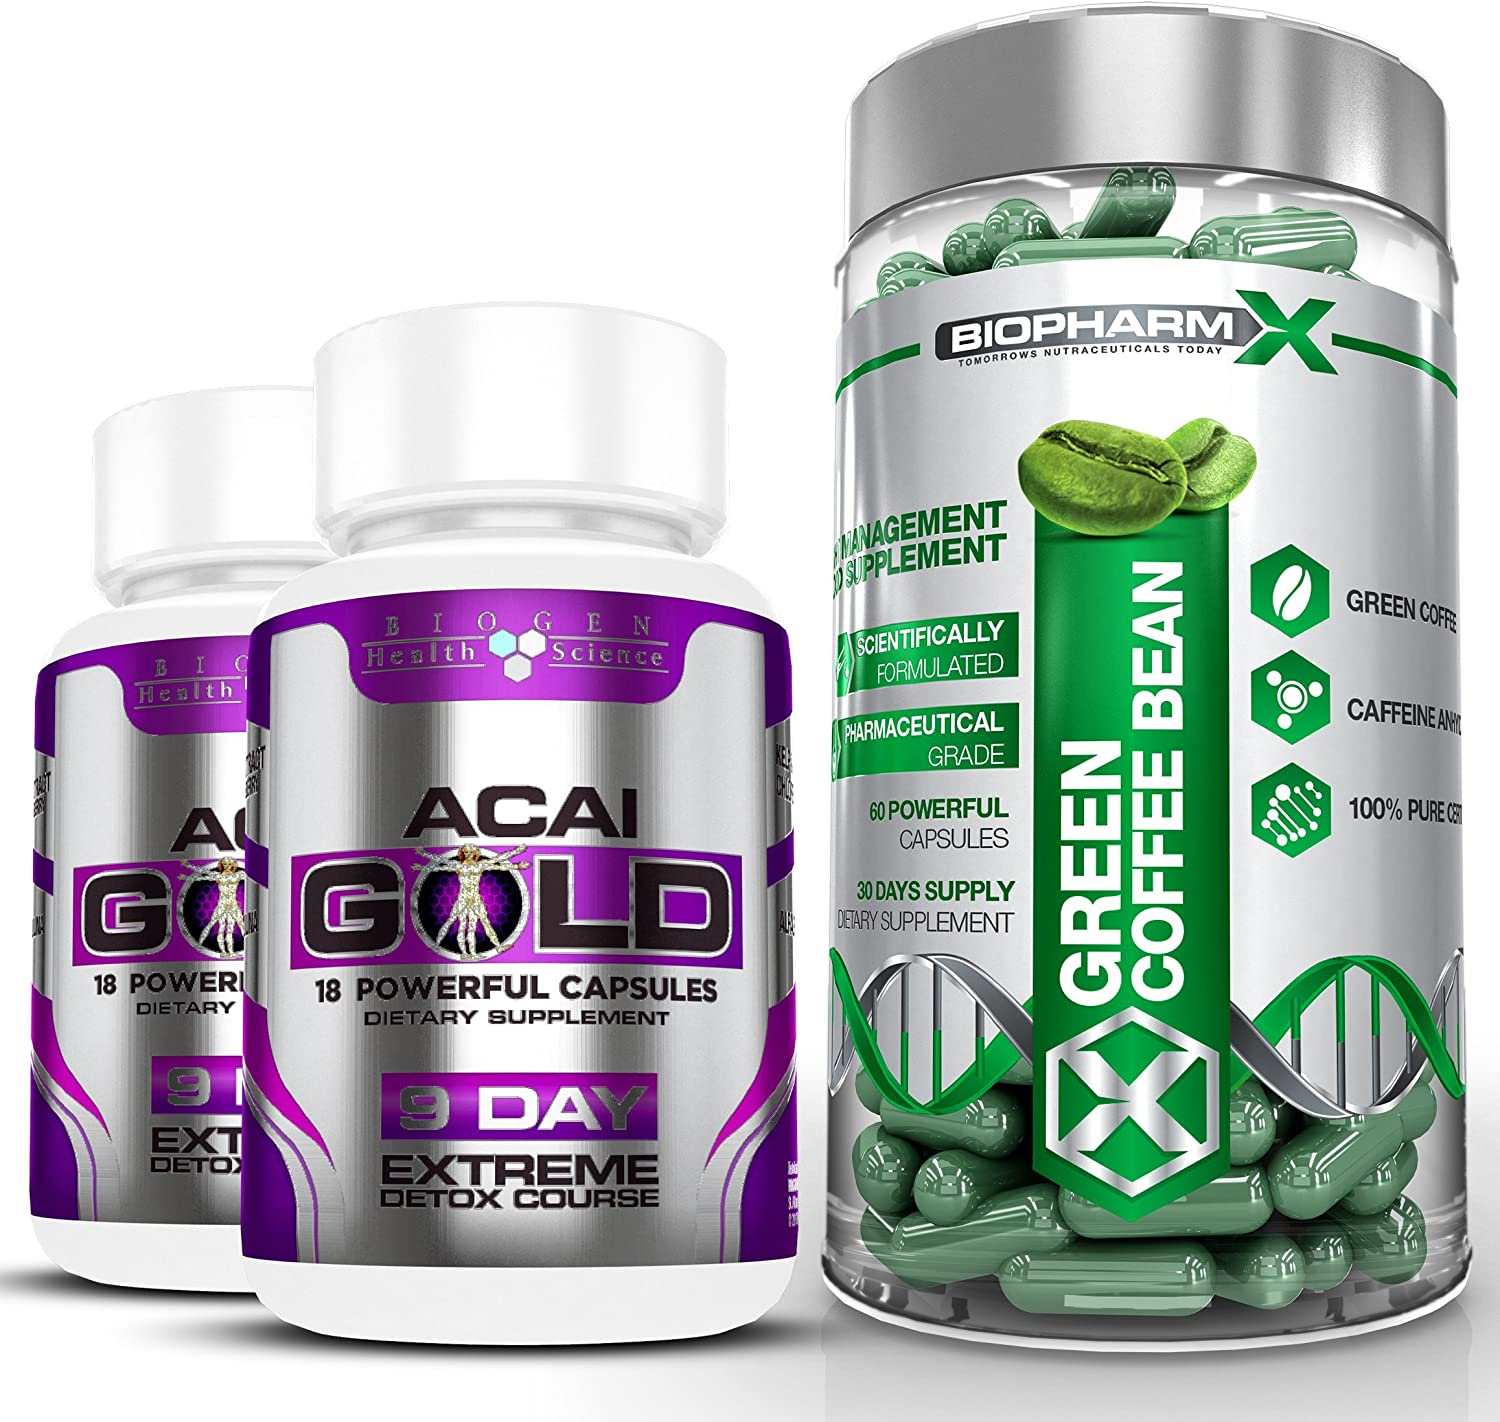 Biopharm-X Green Coffee Bean Extract & Acai Berry Gold : Max Strength Diet/Detox & Weight Loss Bundle (1 Month Supply)